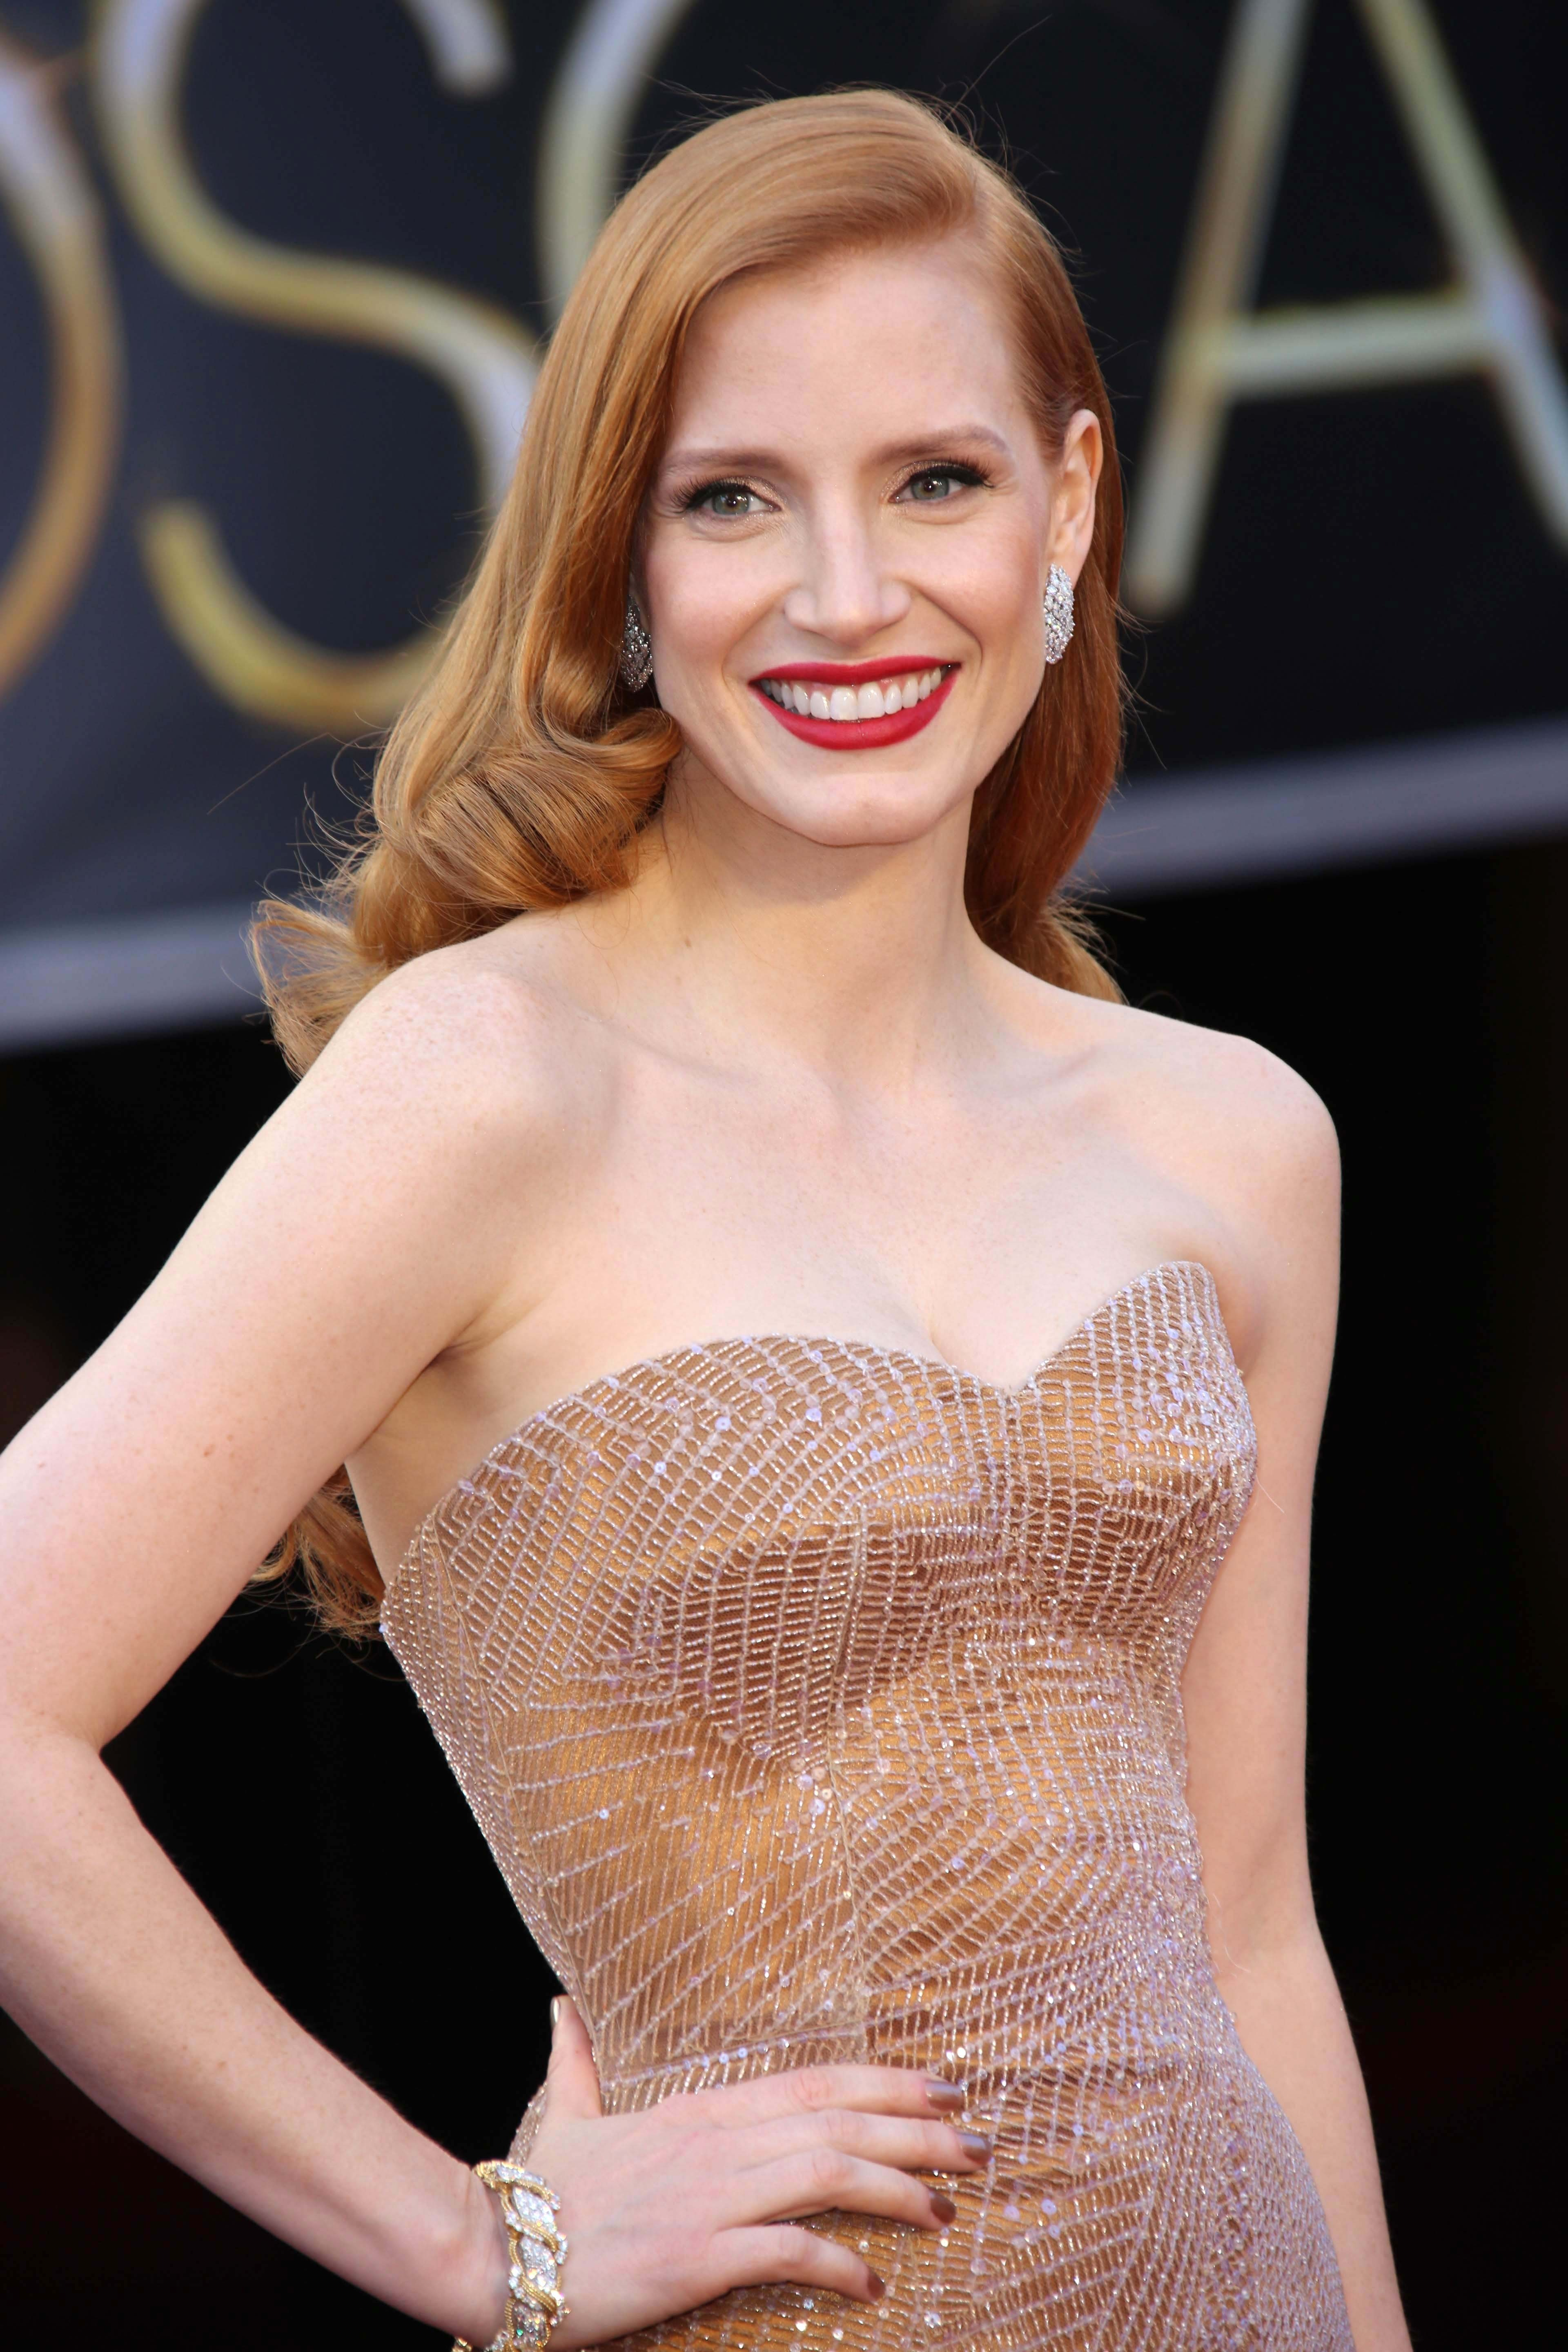 jessica chastain moviesjessica chastain gif, jessica chastain gif hunt, jessica chastain fan, jessica chastain mama, jessica chastain twitter, jessica chastain the help, jessica chastain miss sloane, jessica chastain films, jessica chastain site, jessica chastain movies, jessica chastain boyfriend, jessica chastain кинопоиск, jessica chastain png, jessica chastain quotes, jessica chastain listal, jessica chastain and bryce dallas howard, jessica chastain net worth, jessica chastain makeup, jessica chastain wallpapers, jessica chastain filmi